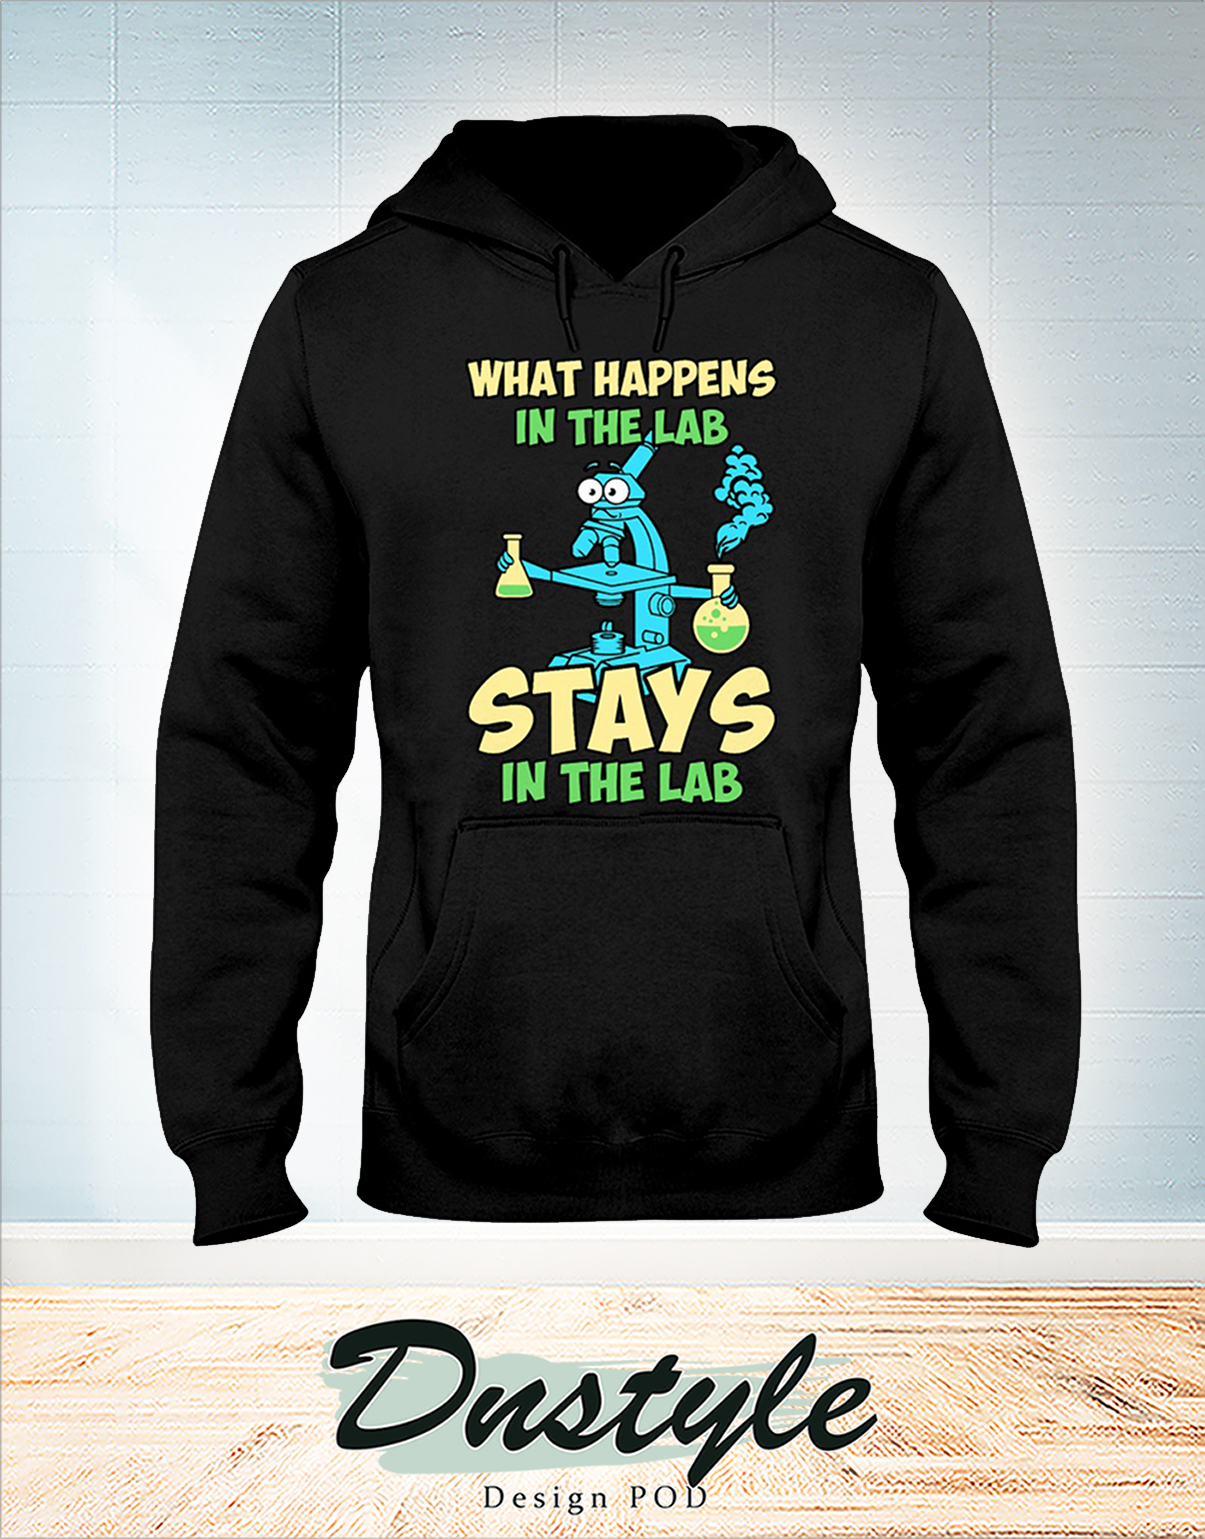 Medtech what happens in the lab stays in the lab hoodie